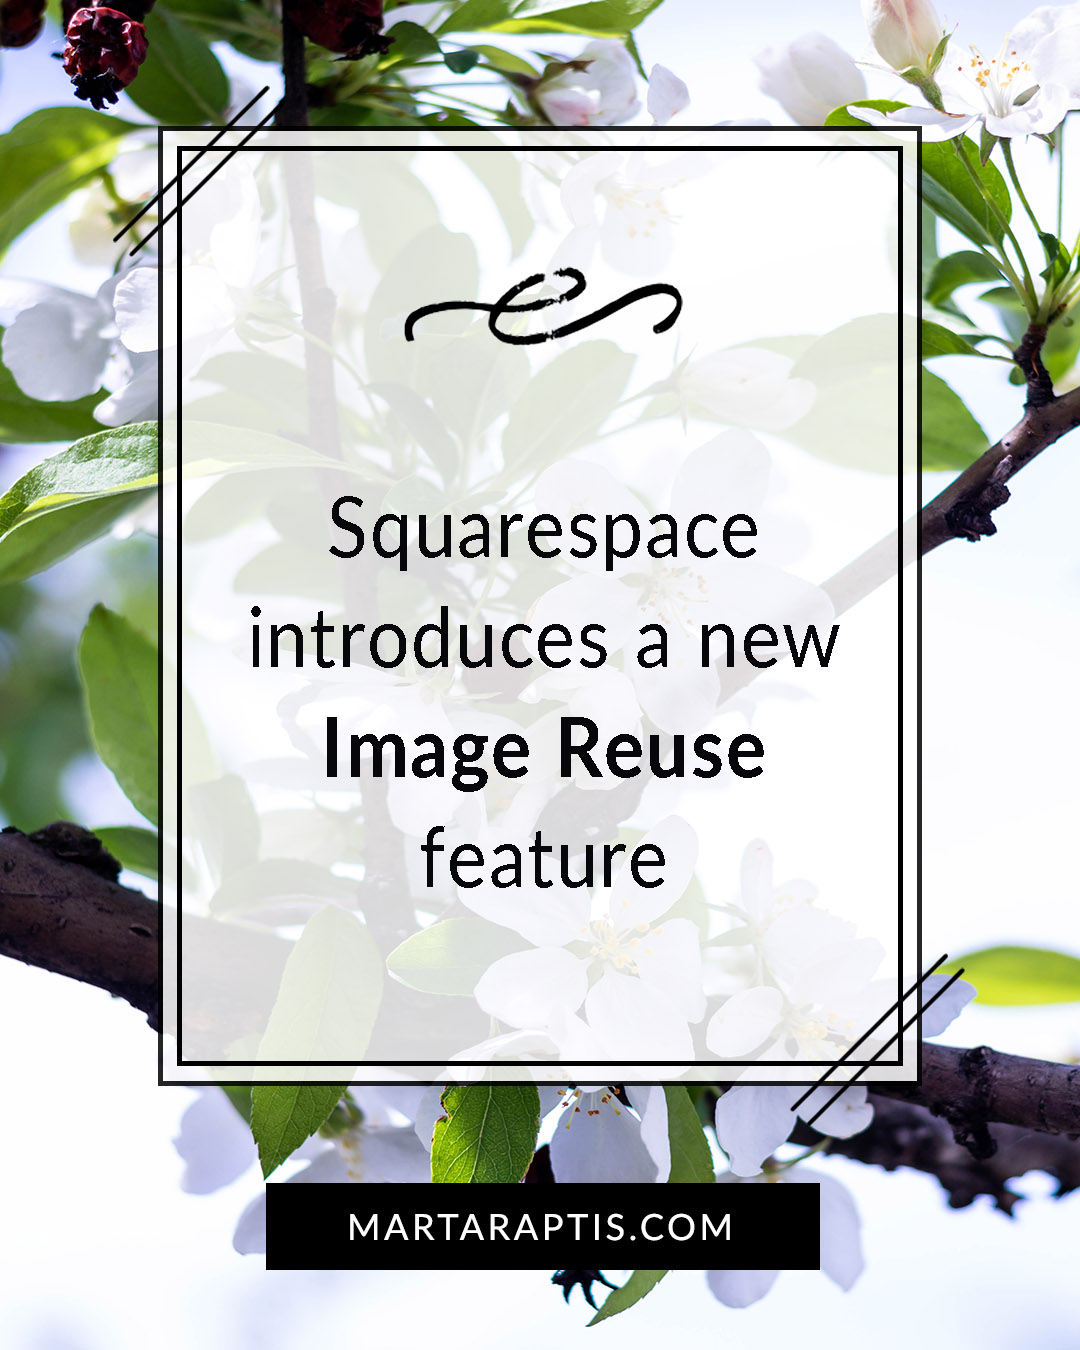 Squarespace introduces a new Image Reuse feature